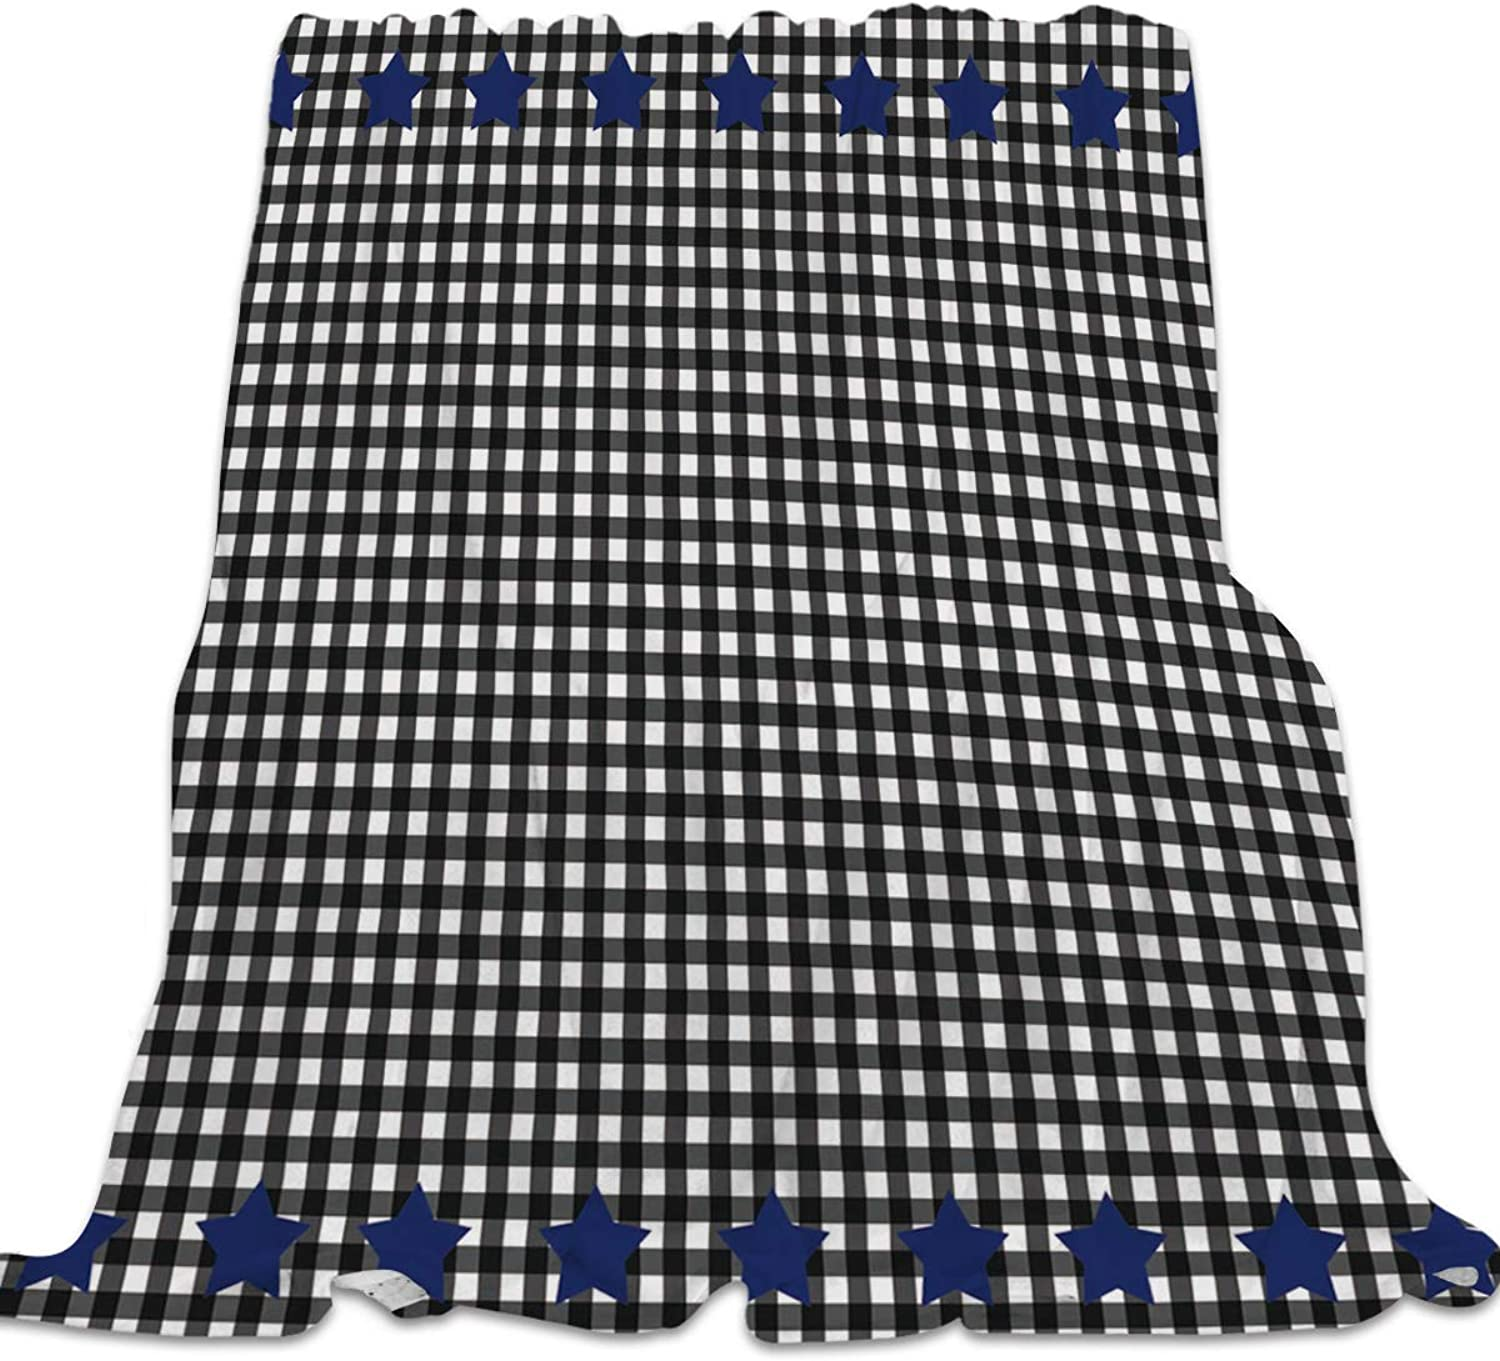 YEHO Art Gallery 49x59 Inch Flannel Fleece Bed Blanket Soft ThrowBlankets for Kids Adult,Black and White Lattice bluee Star,Lightweight Blankets for Bedroom Living Room Sofa Couch Home Decor